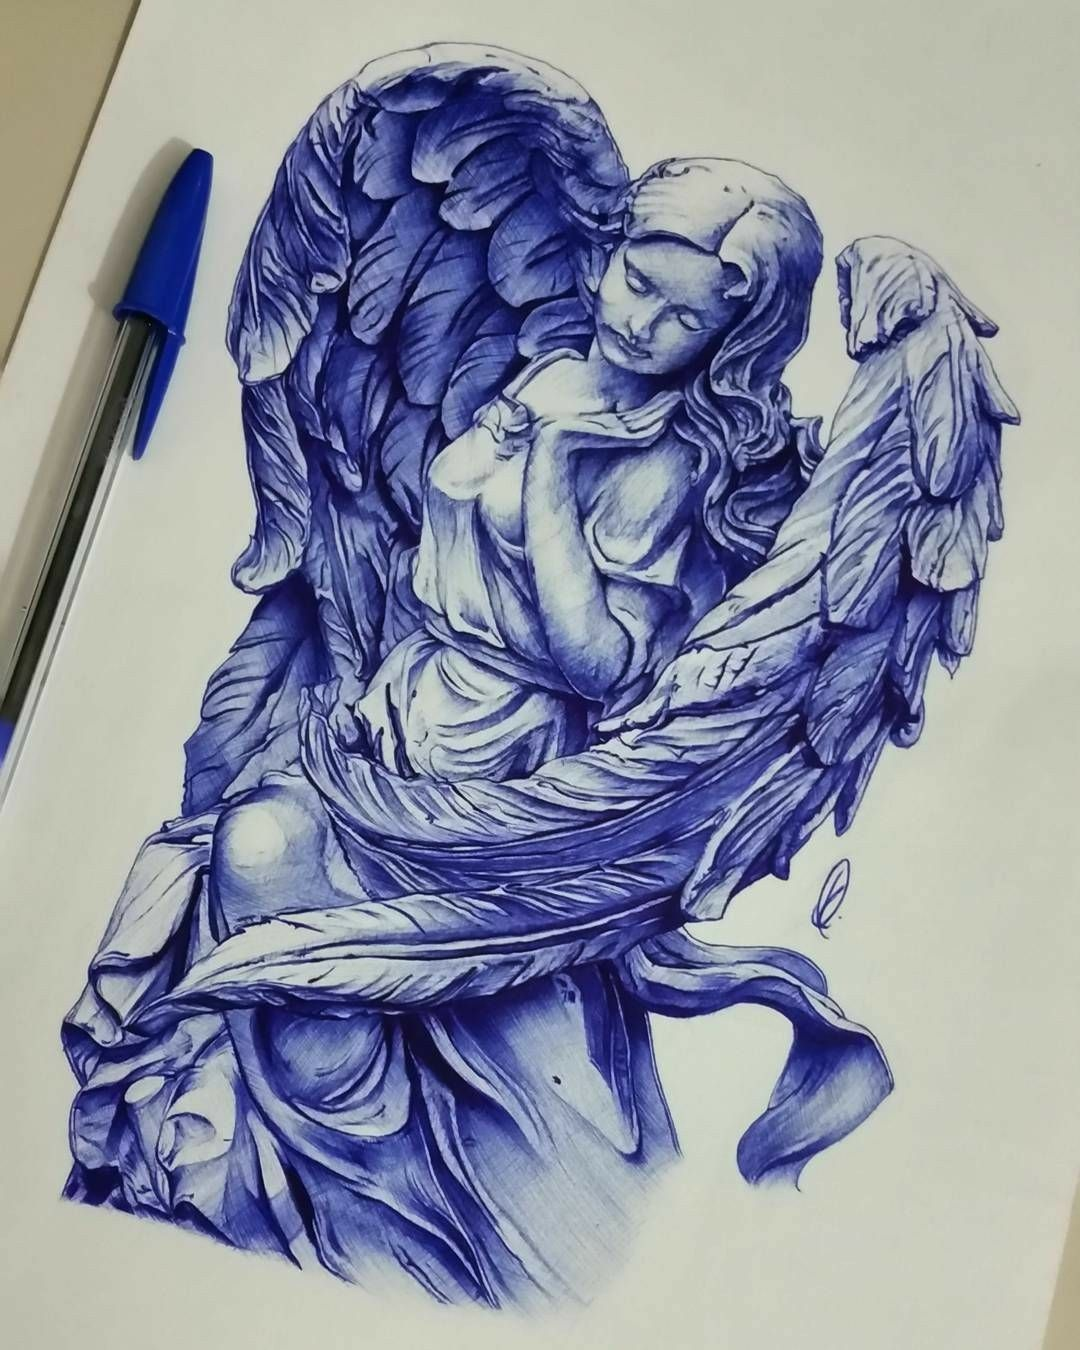 Pin By Cristy De La Cruz On Tattoos Drawings Art Drawings